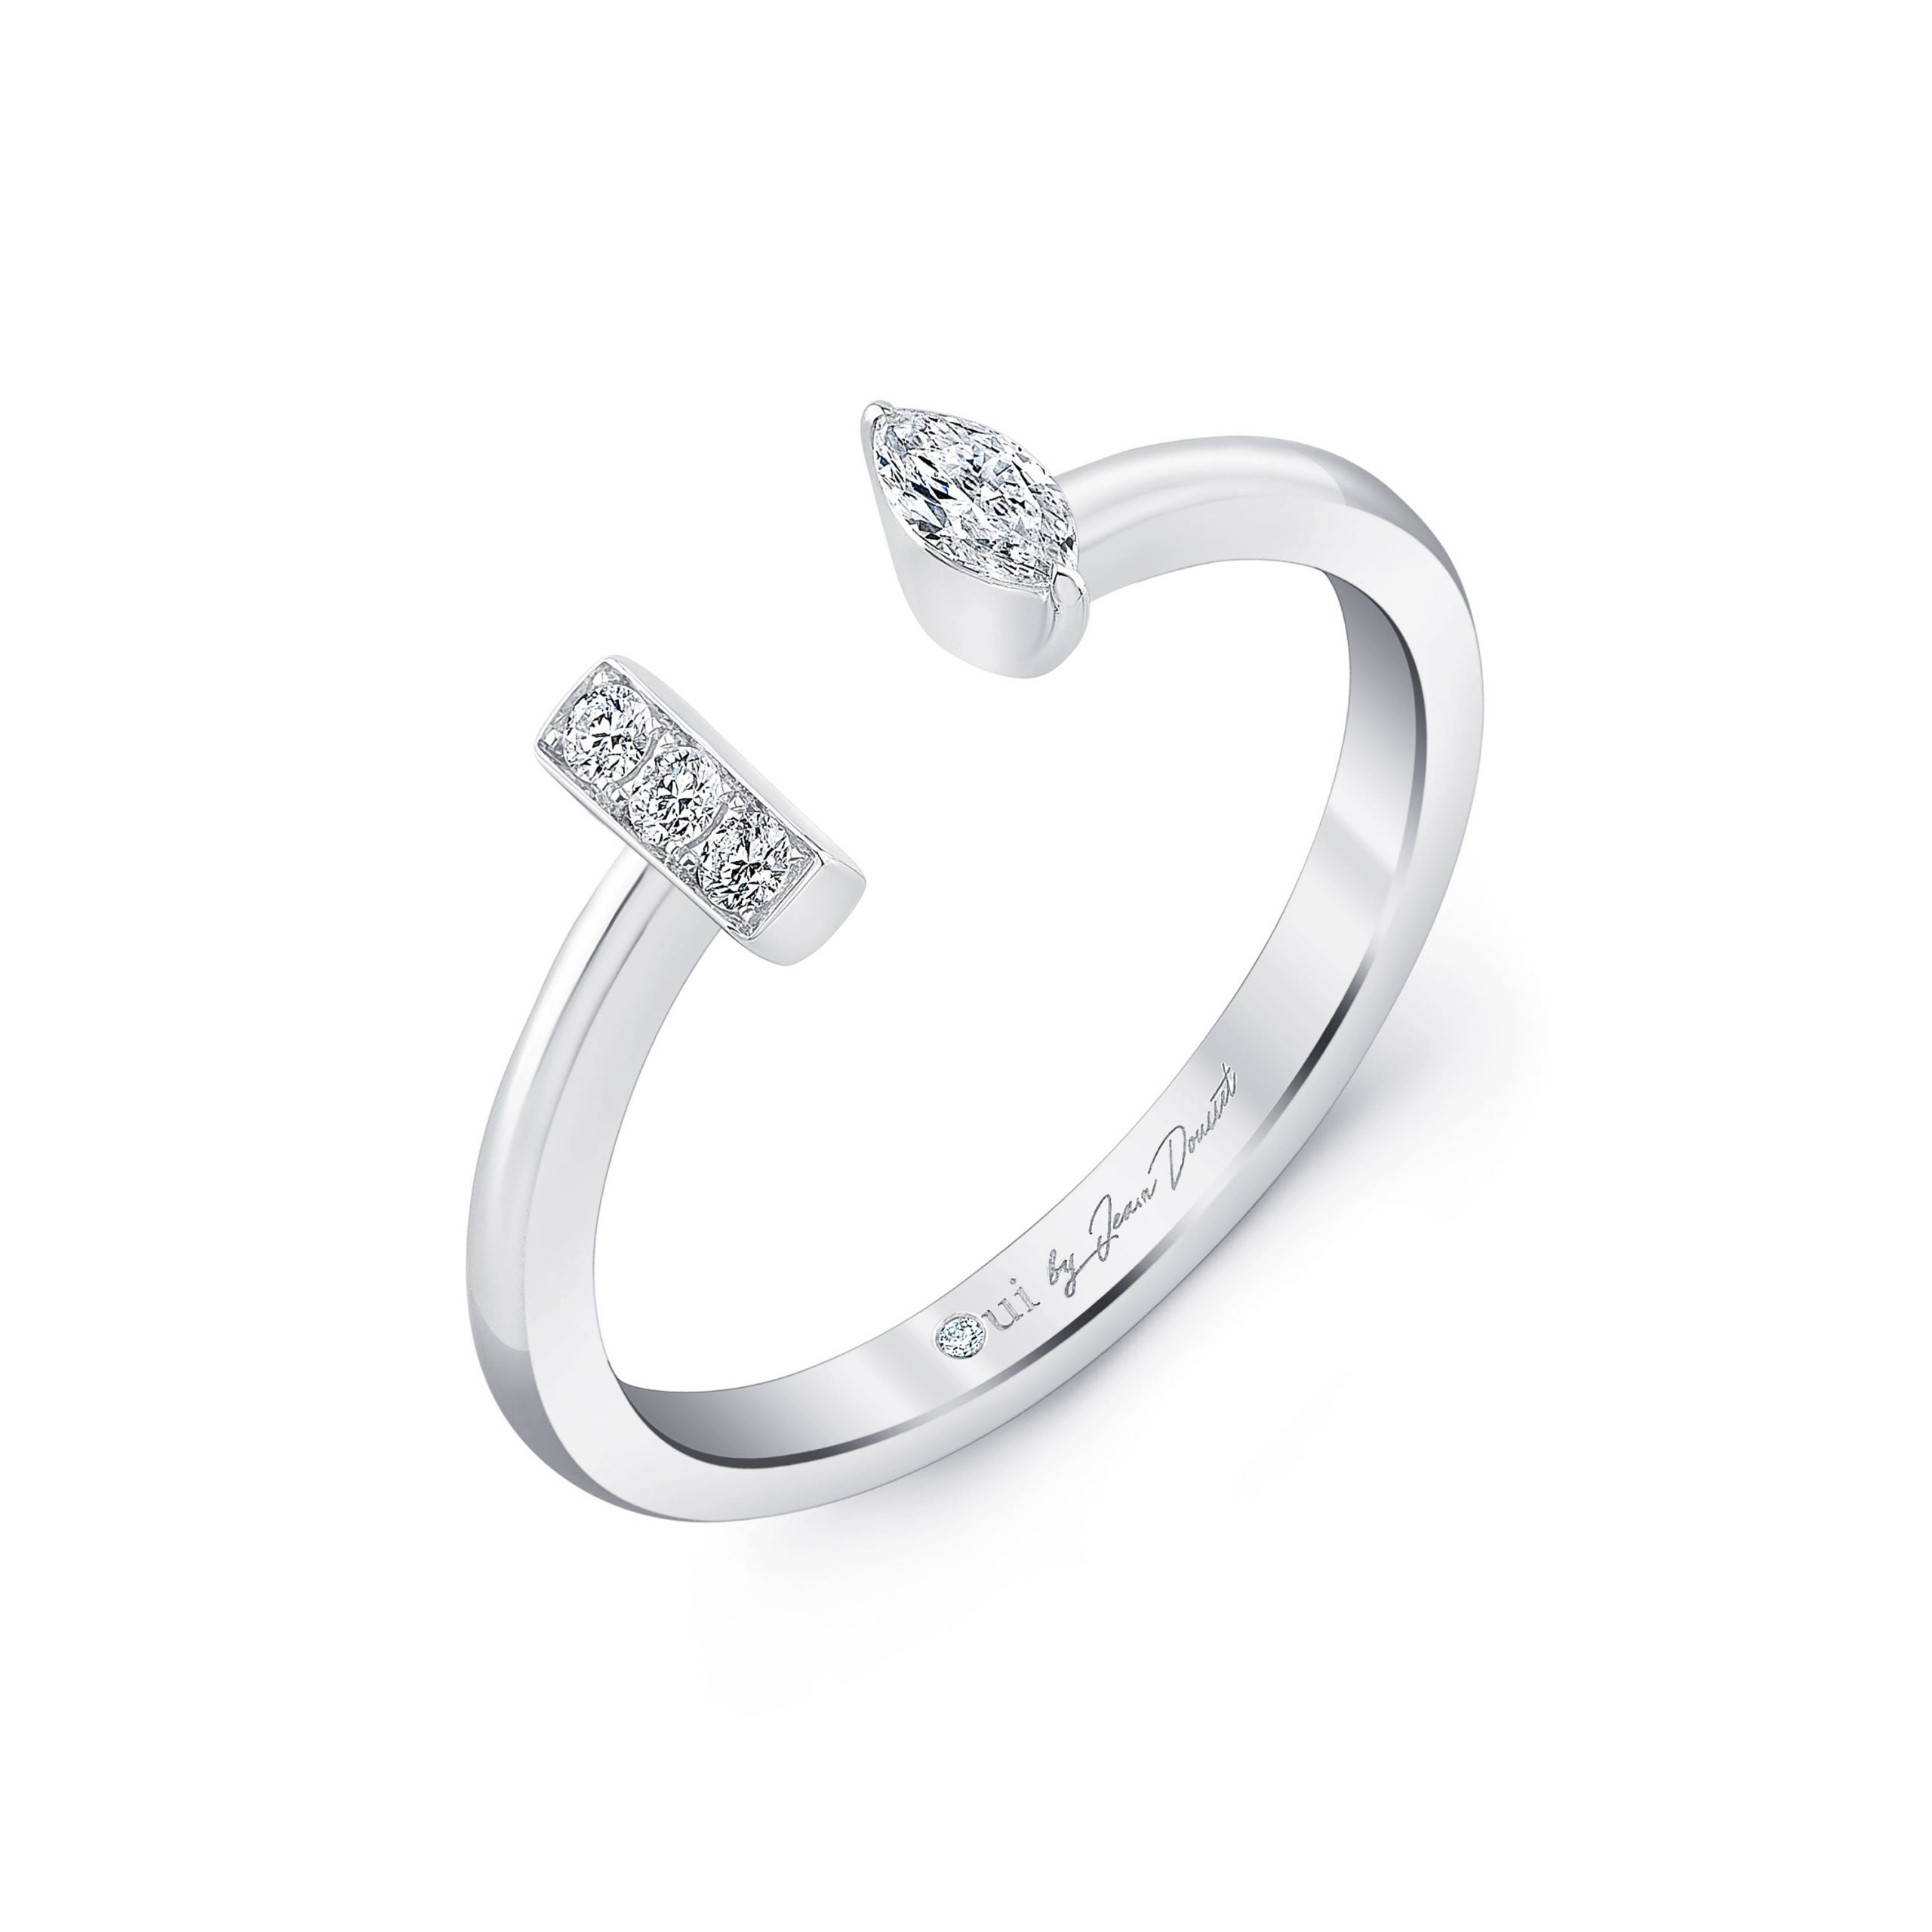 Celeste Mixed Diamond Pavé Bar Open Ring, marquise in 18k White Gold Profile View by Oui by Jean Dousset